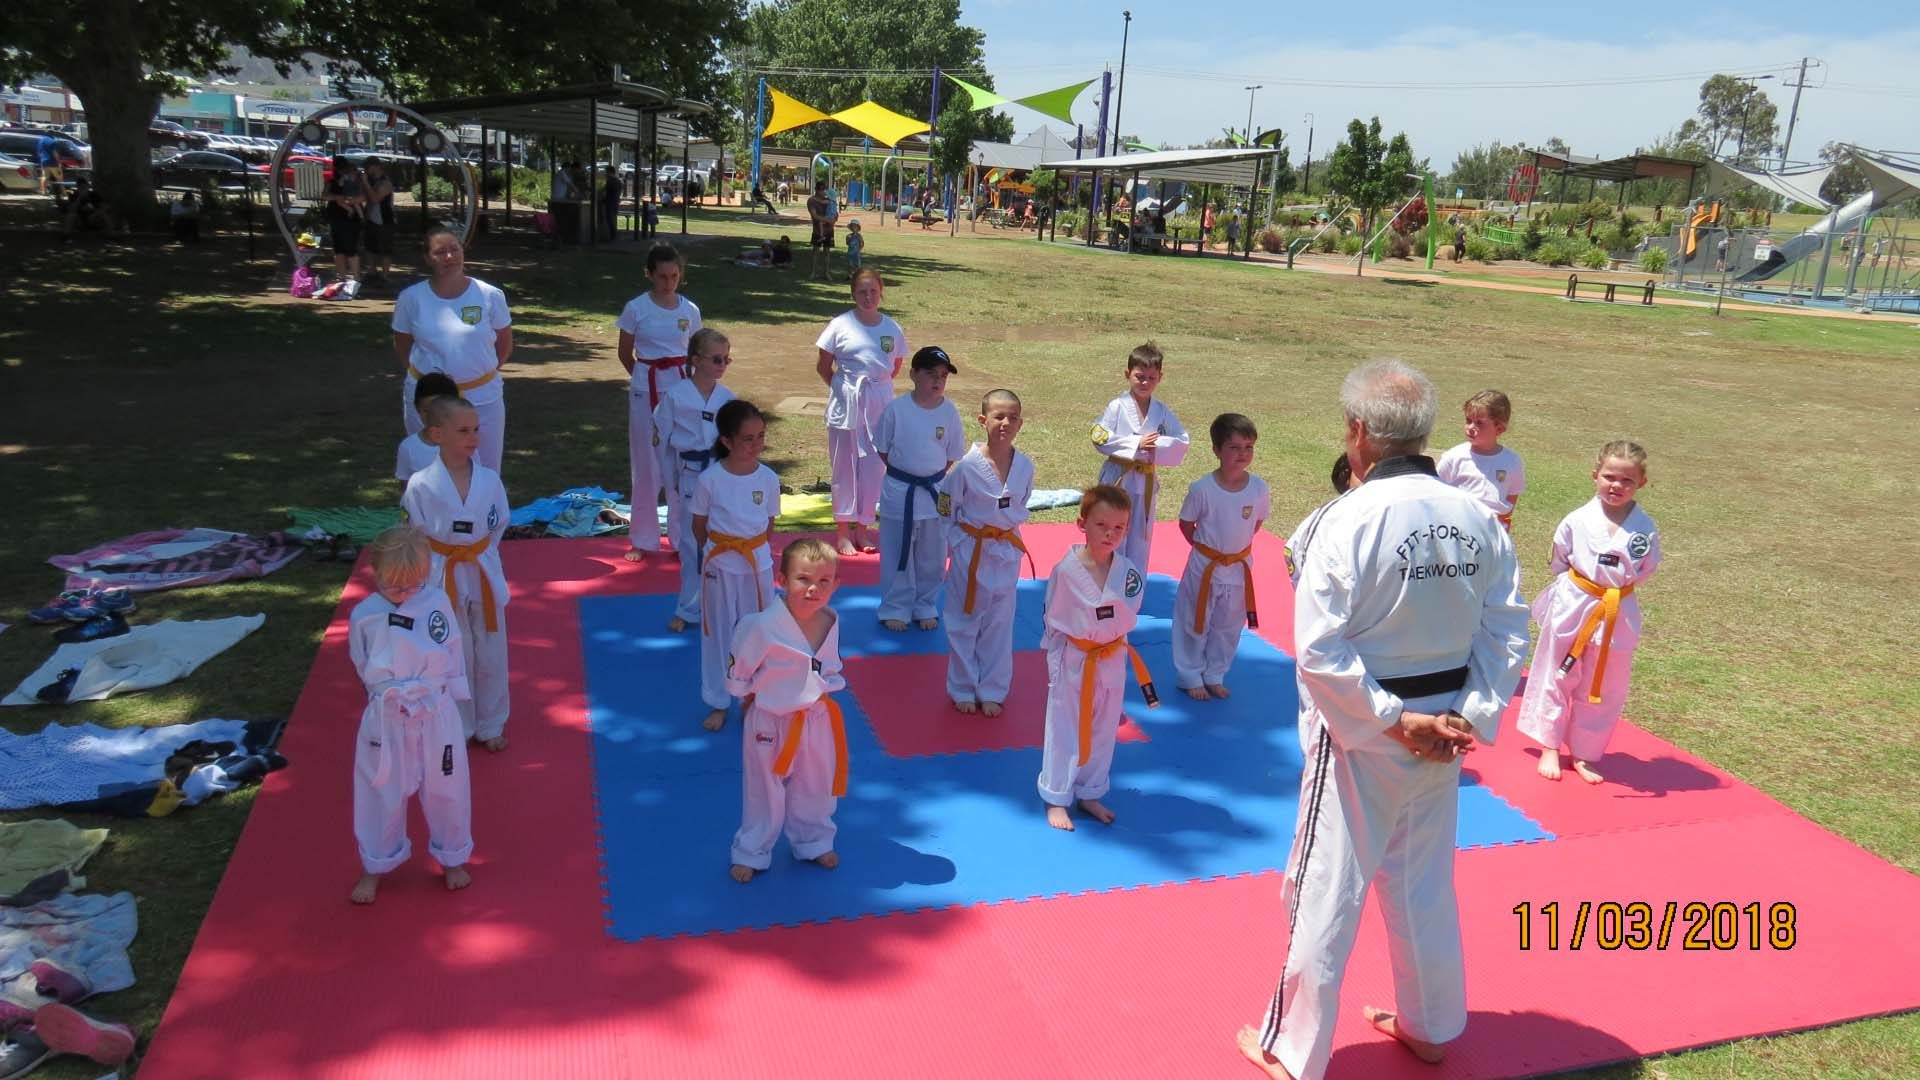 Young martial arts students ready to practice taekwondo on a mat in Tamworth.